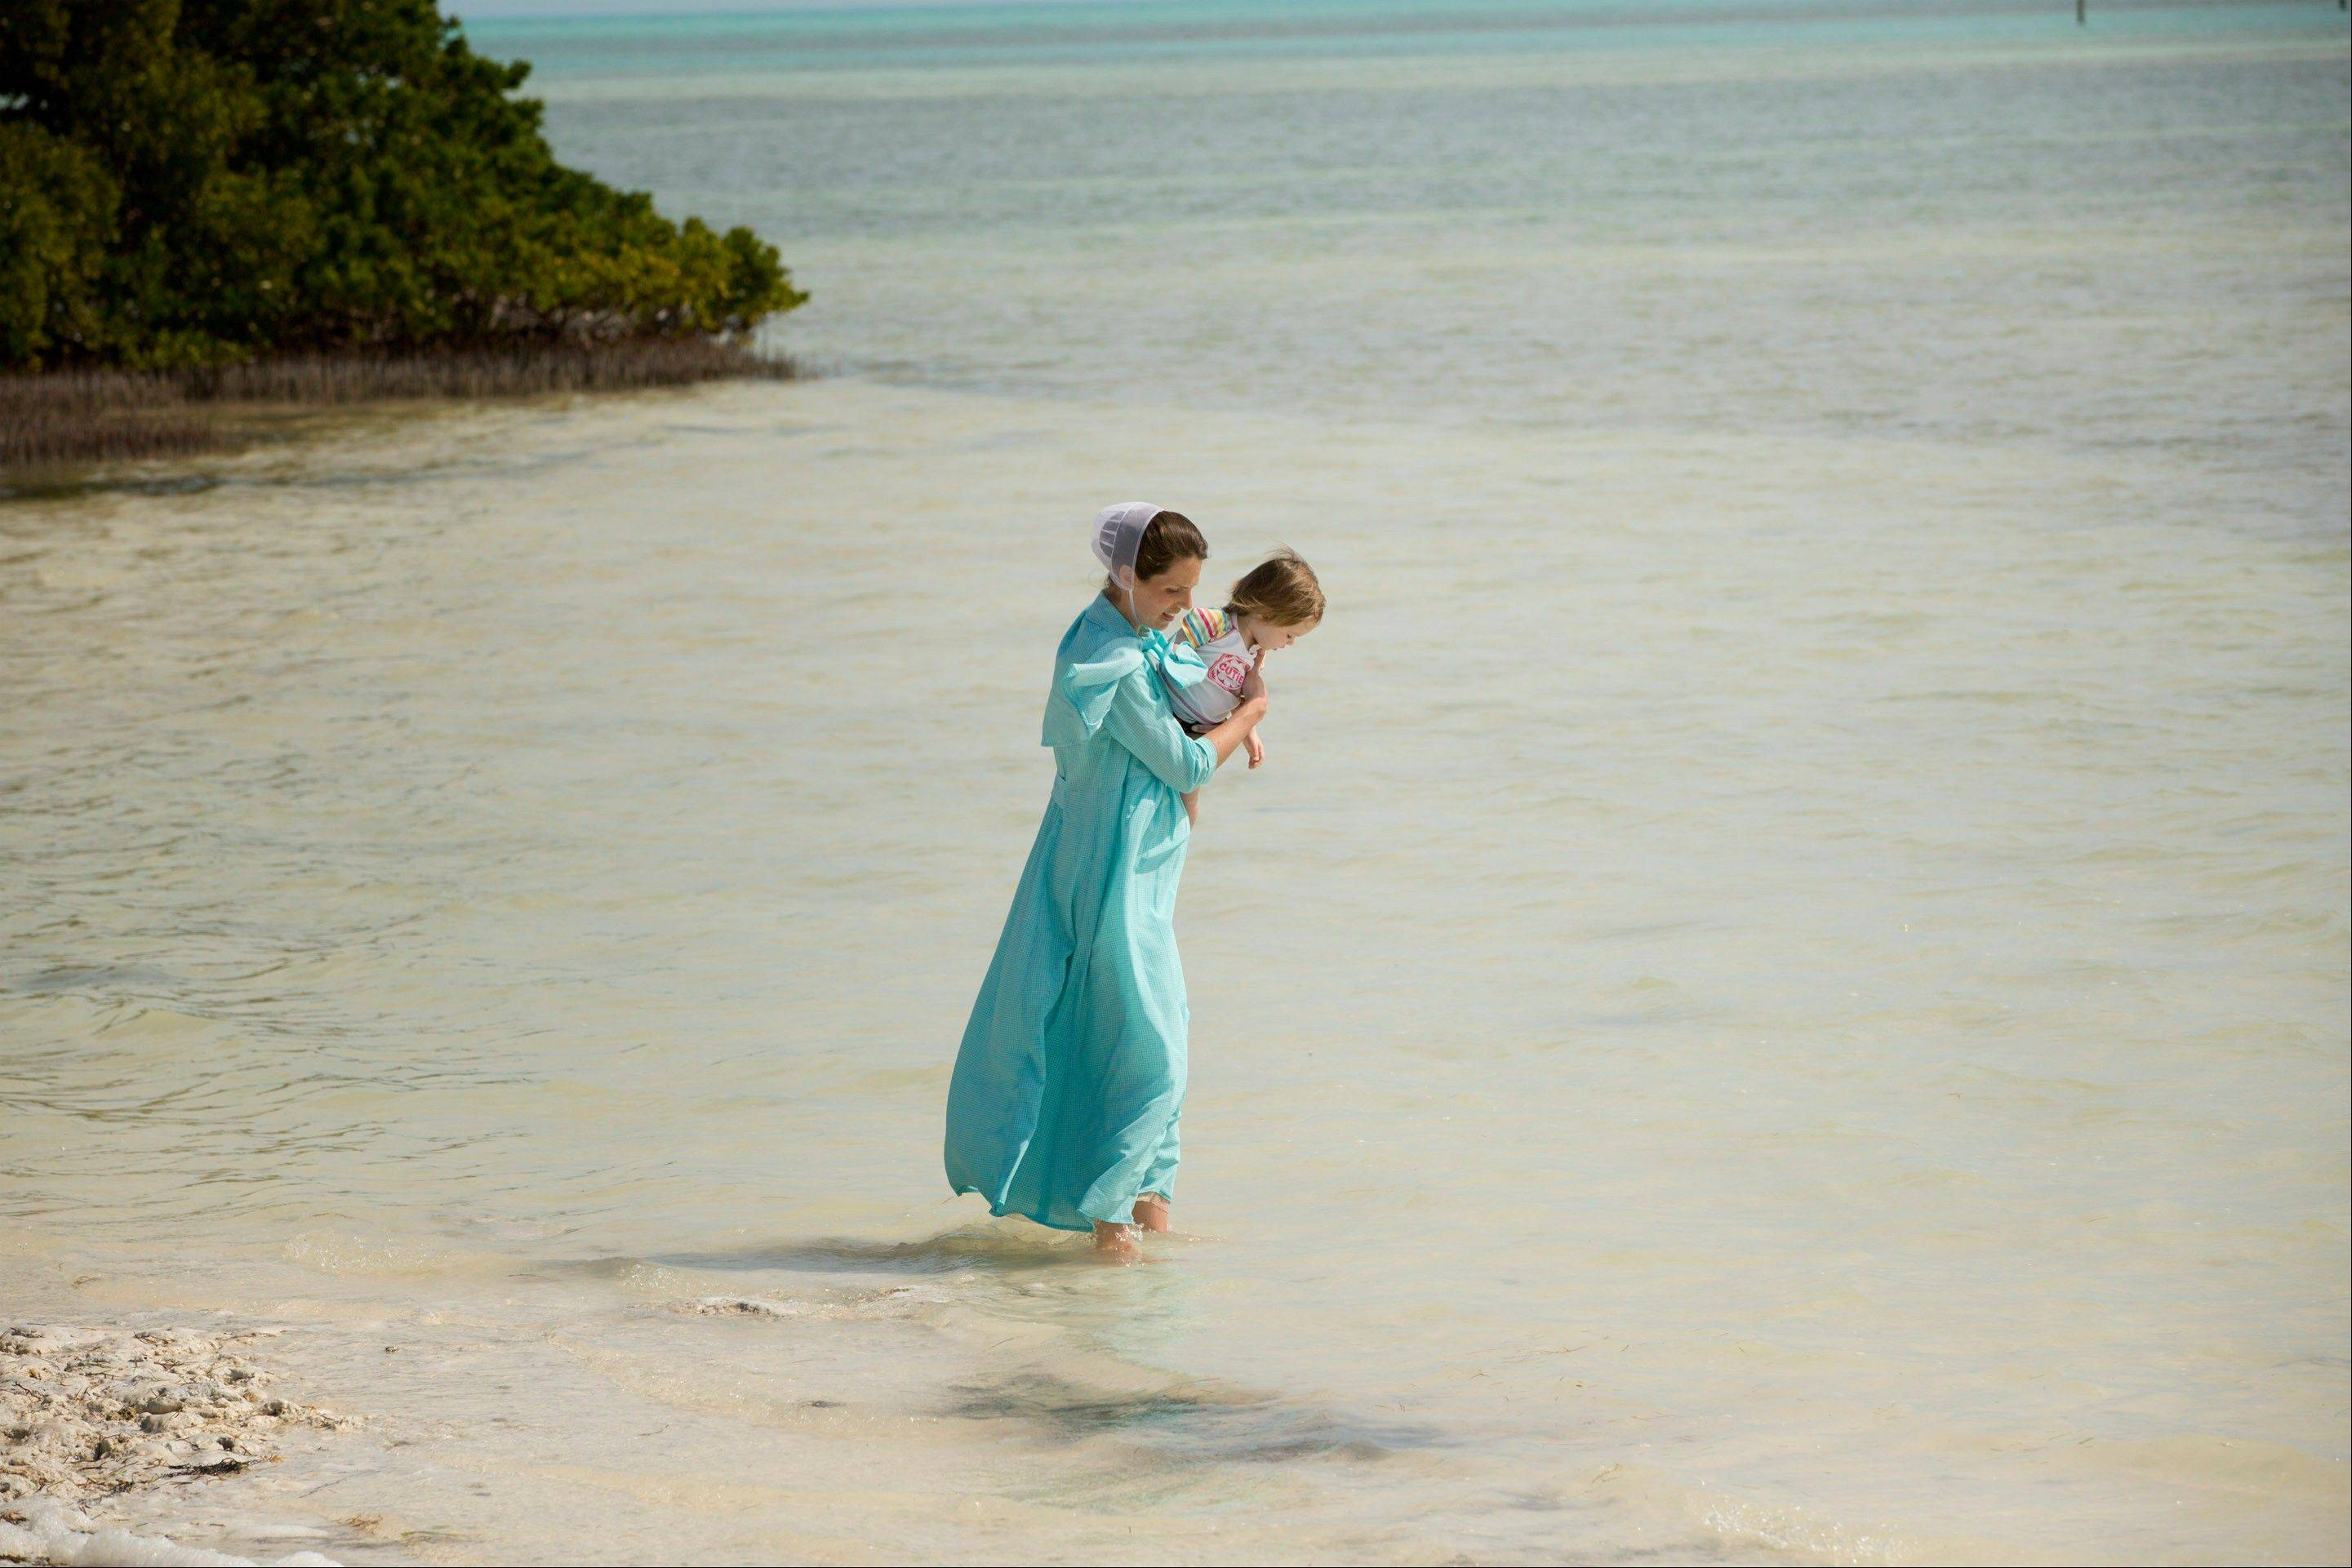 A visitor and her daughter wade in the waters of Anne's Beach near Islamorada, Fla.